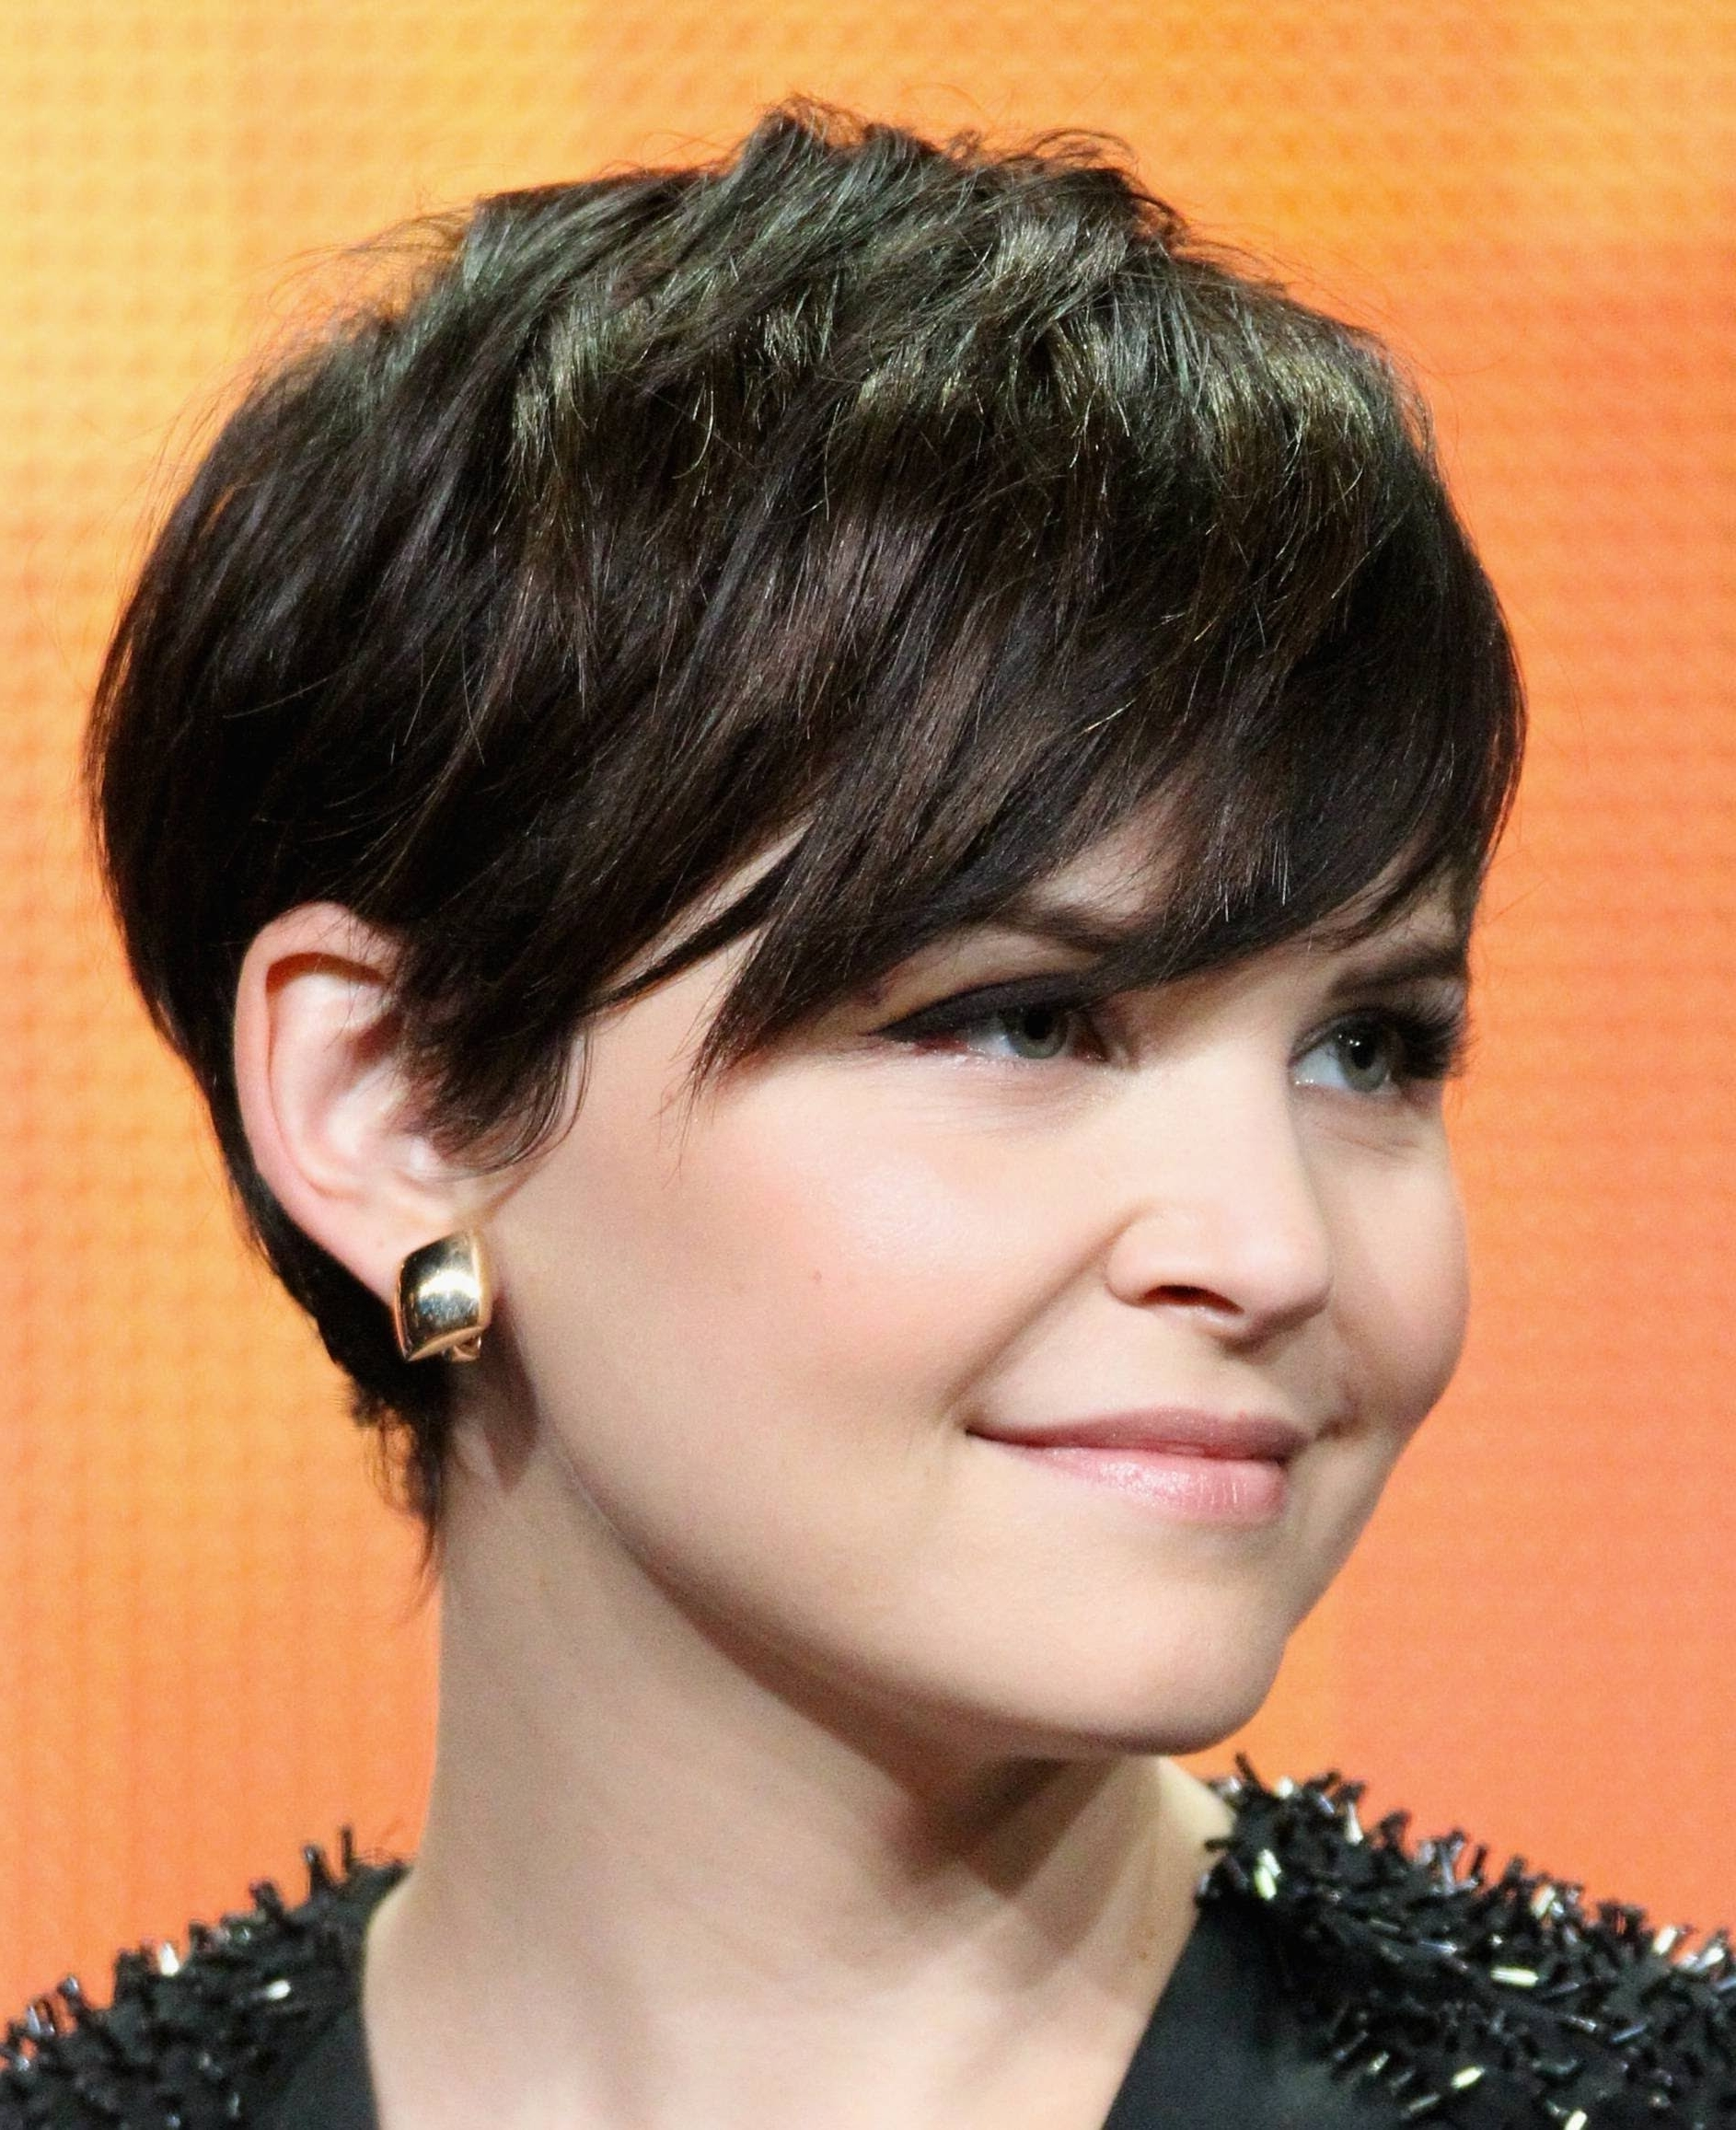 Ginnifer Goodwin Pixie Haircut Tutorial | The Salon Guy – Youtube In Best And Newest Pixie Hairstyles With Long Sides (Gallery 11 of 15)